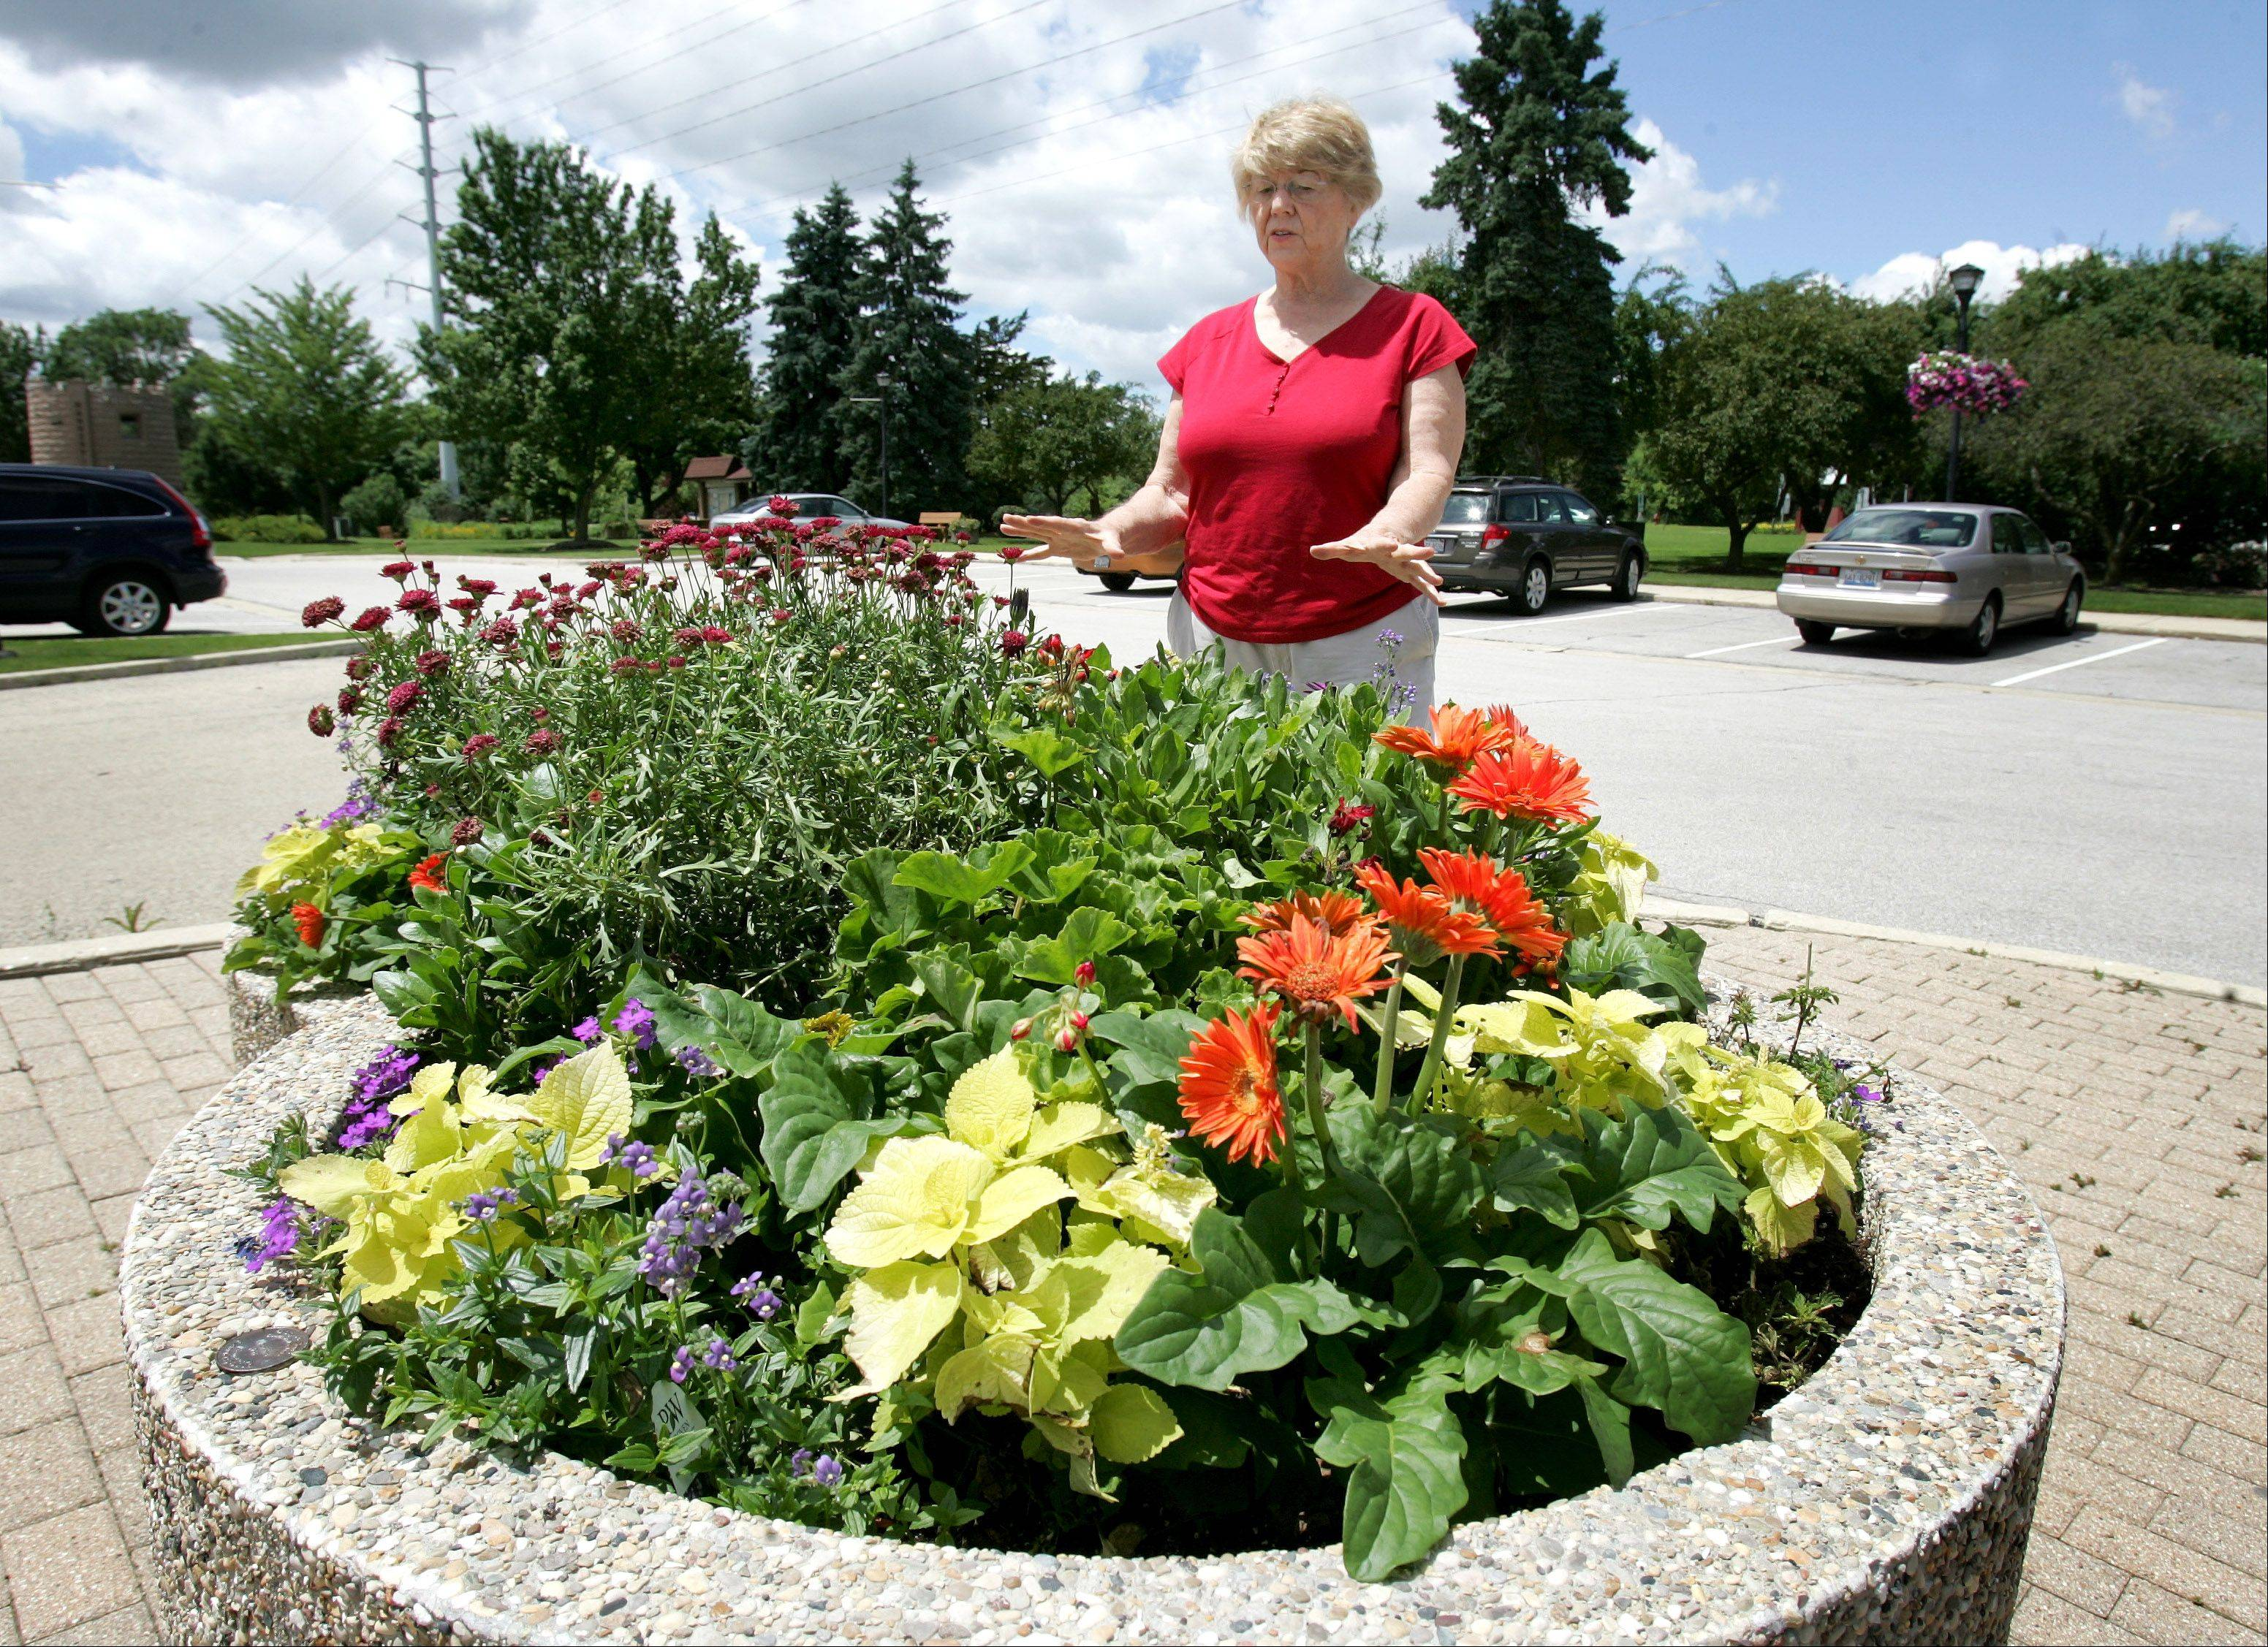 Dorothy Deer, president of Warrenville in Bloom, says she's concerned about a proposal to suspend the city's hotel-motel grant program, which provided her group with $21,000 for citywide beatification efforts.